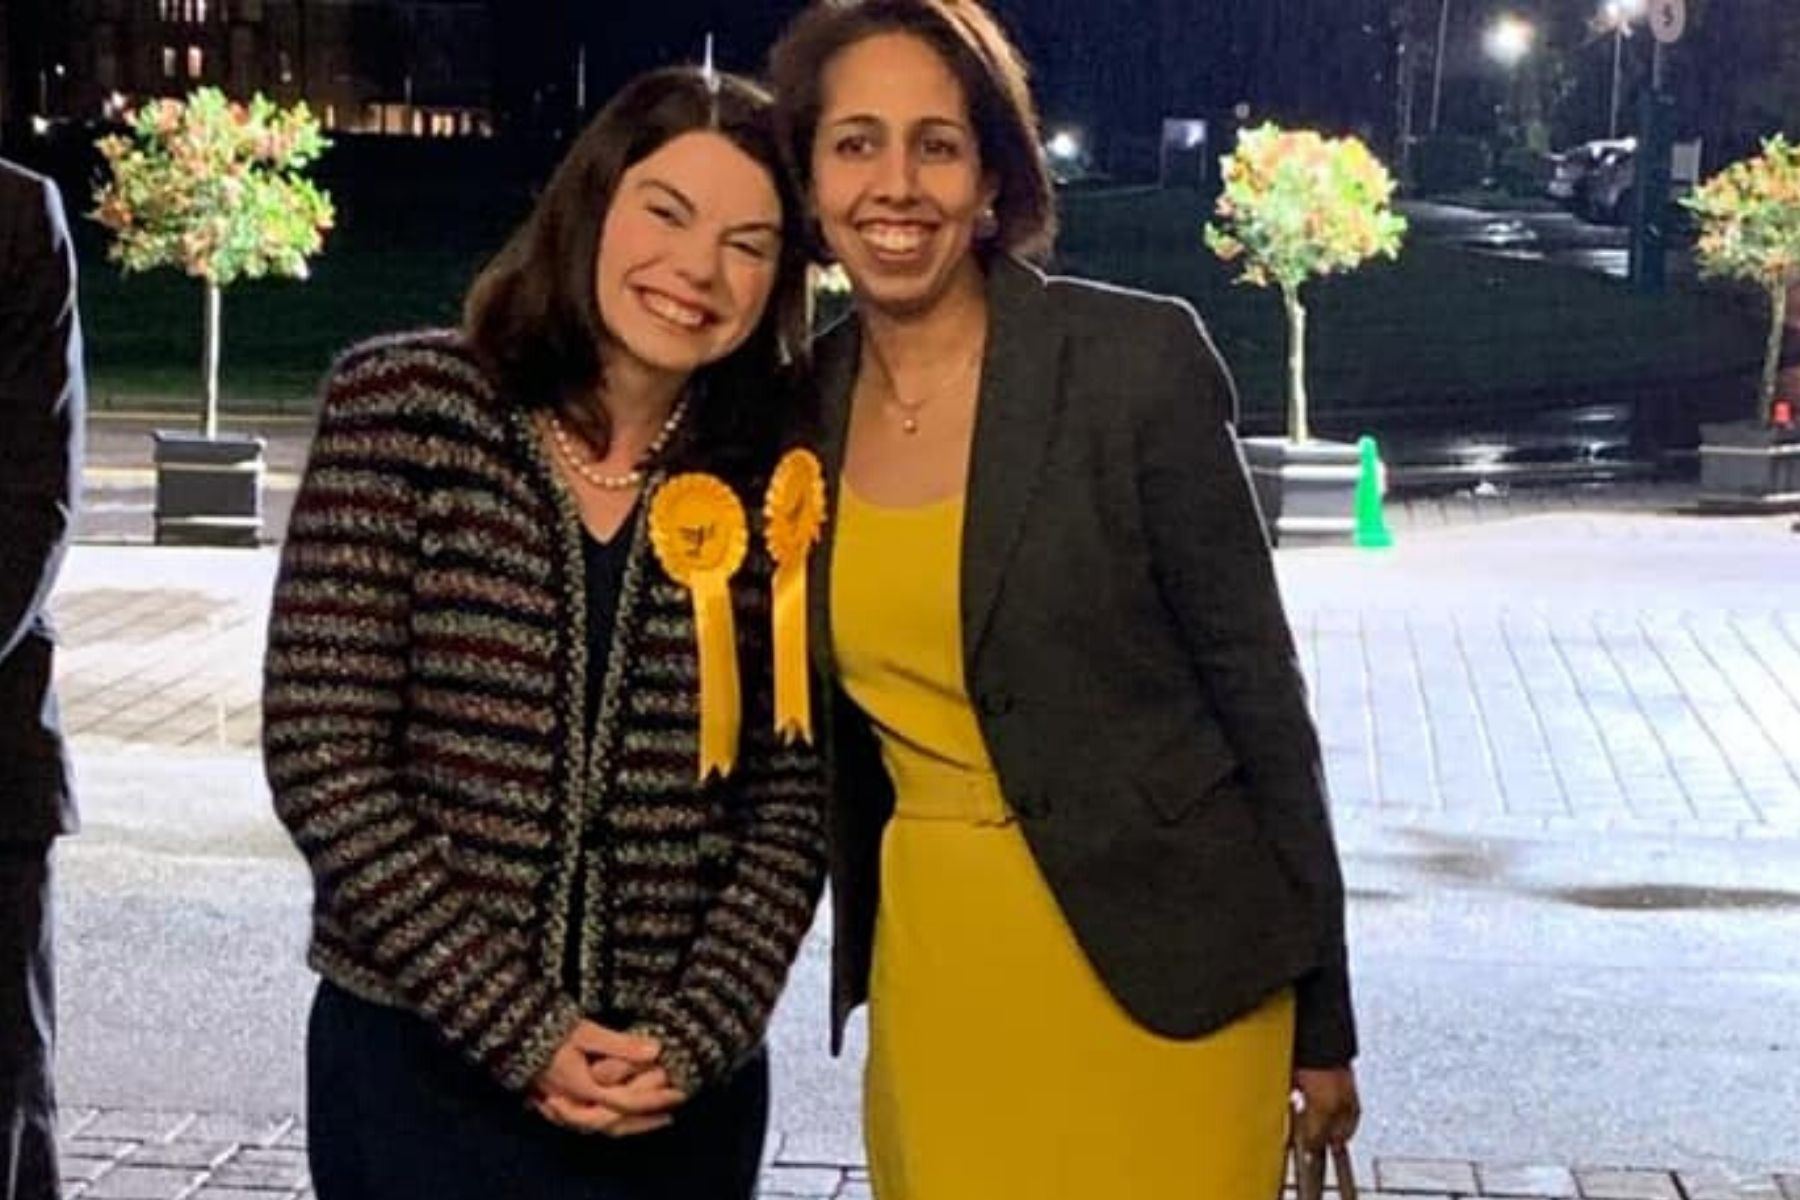 Two new Liberal Democrat MPs elected in London